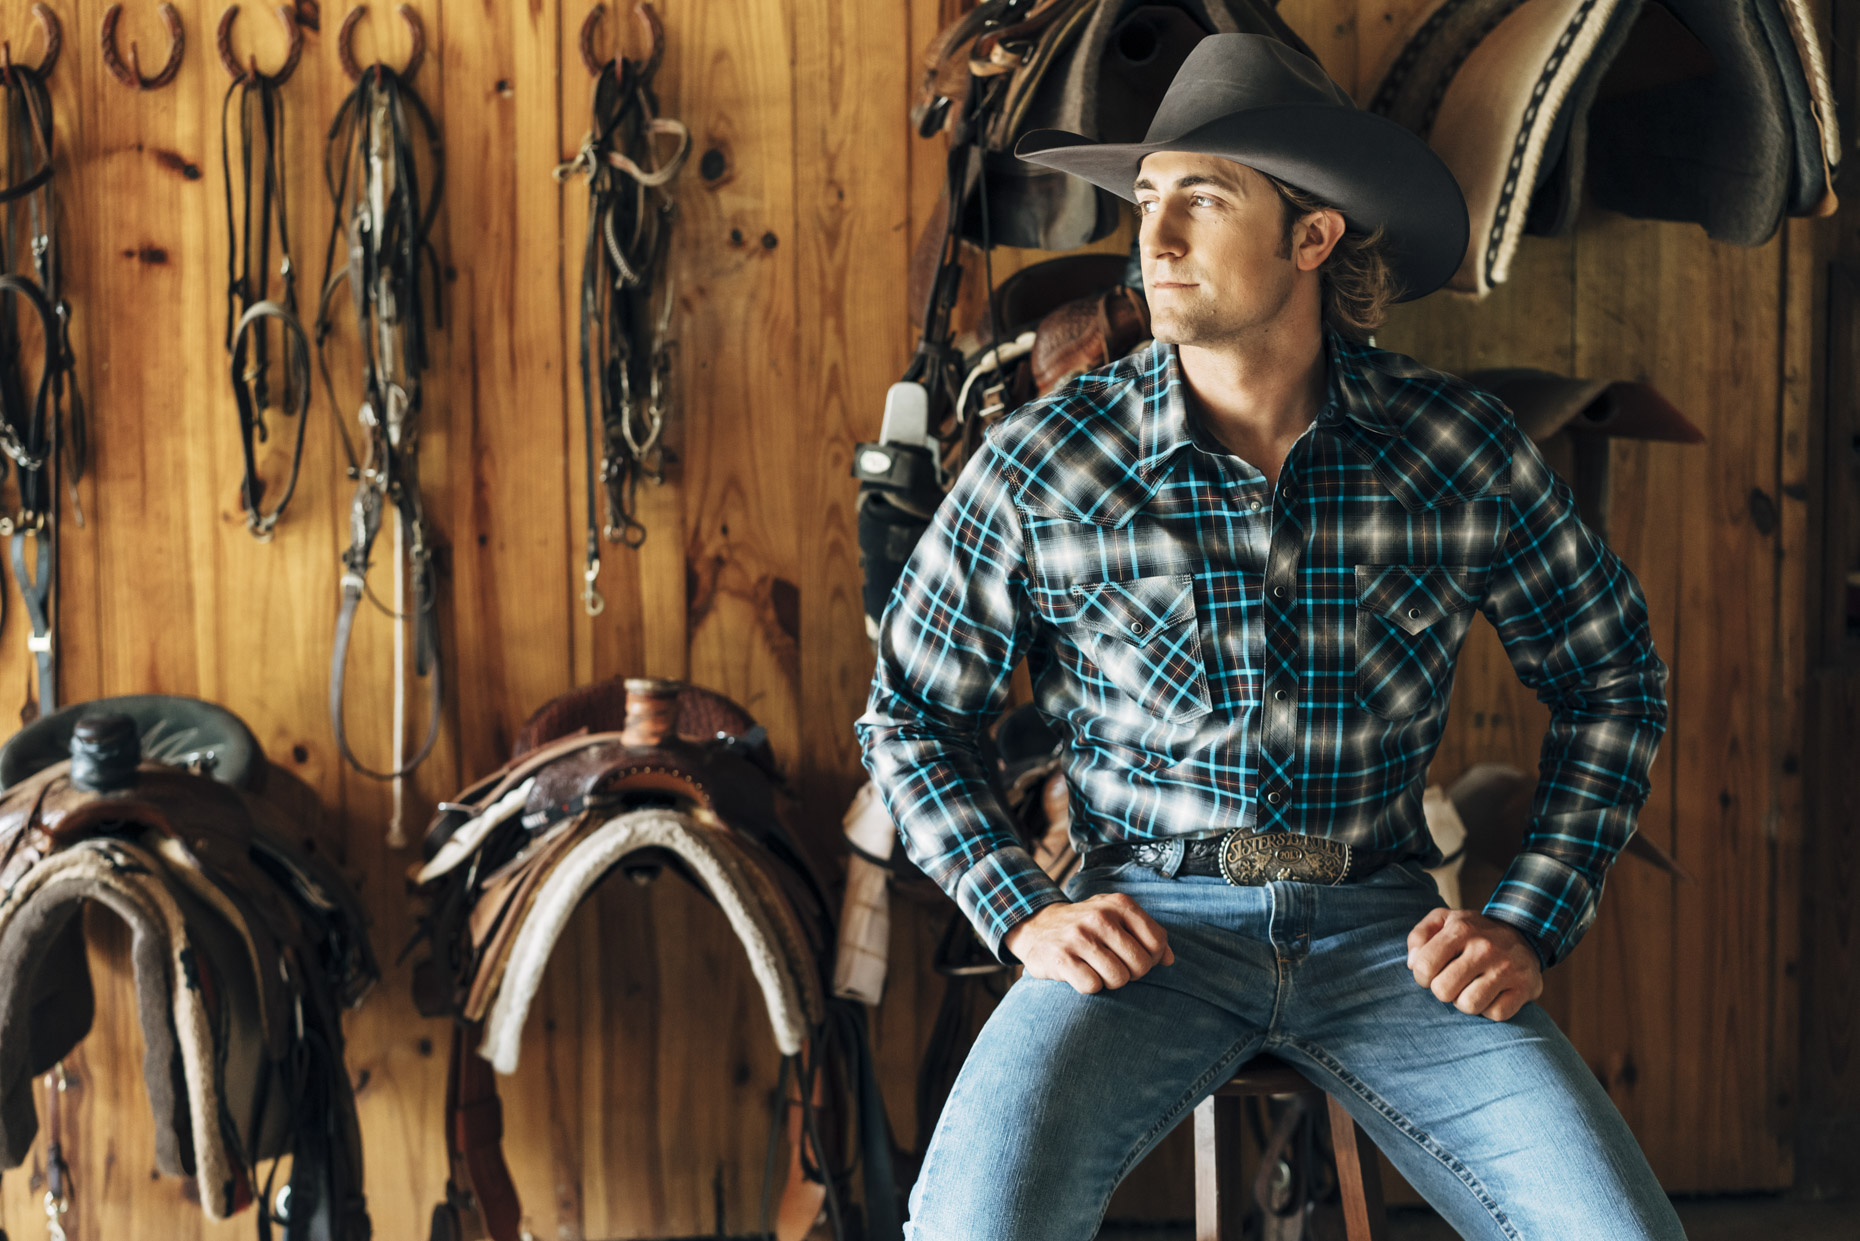 Man in cowboy hat wearing wrangler jeans and shirt sitting in front of saddles in horse barn